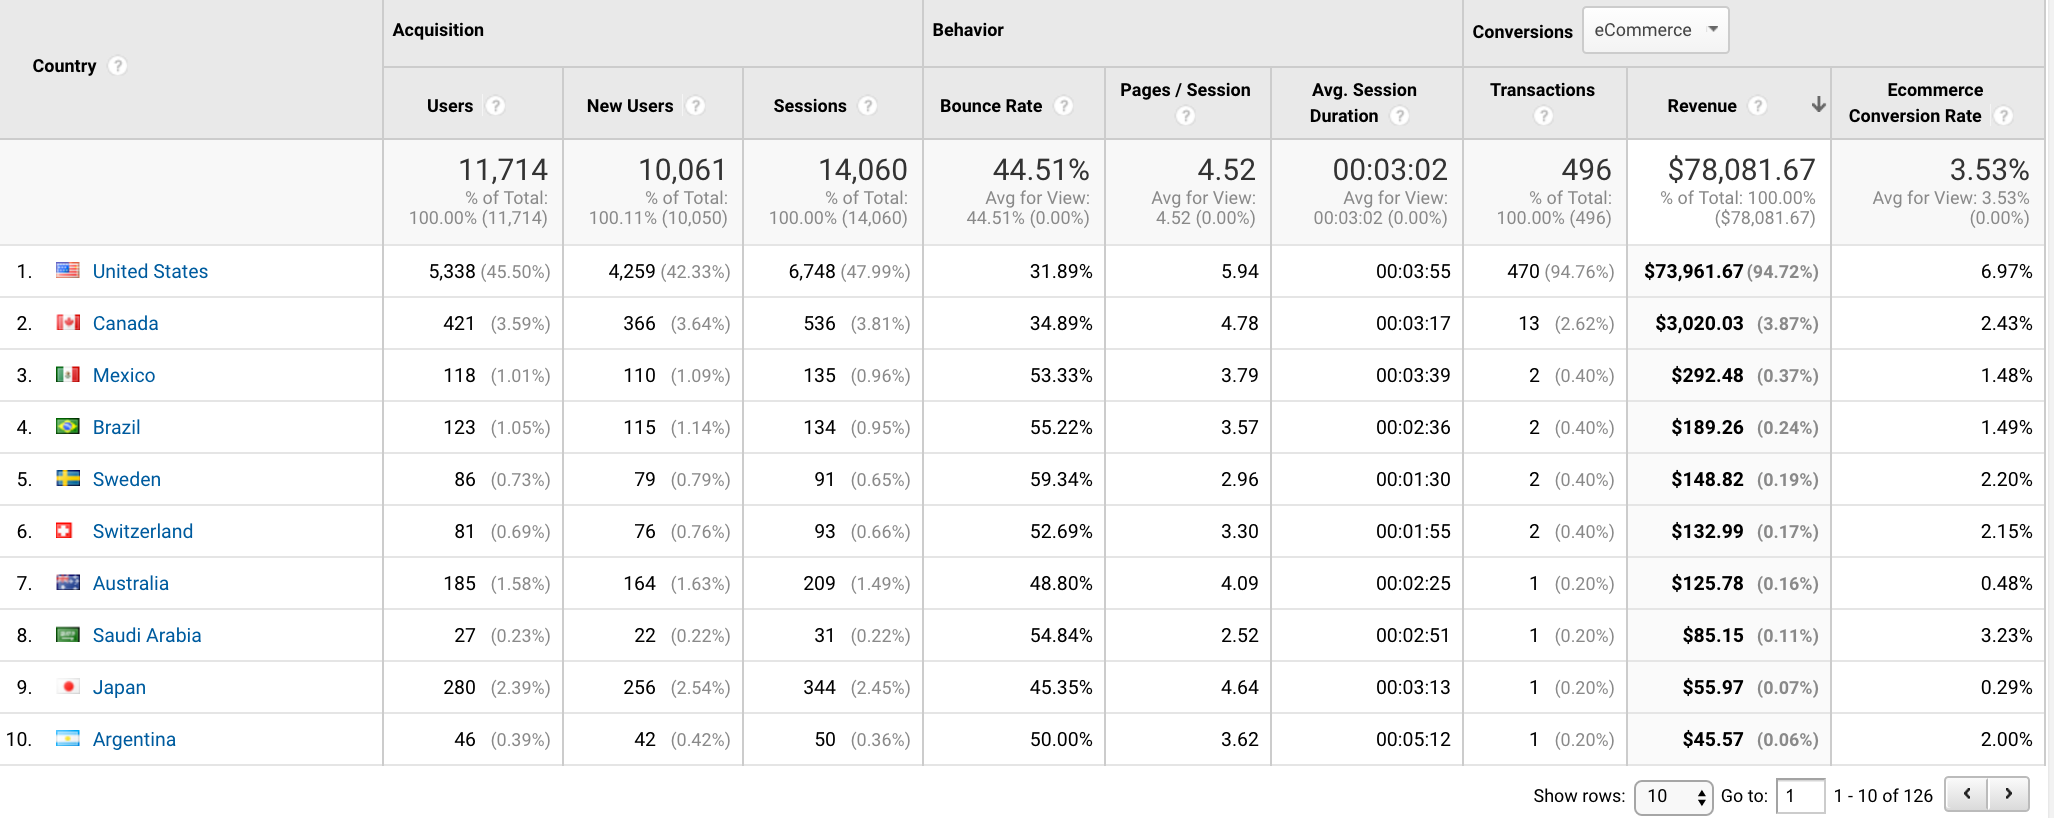 Google Analytics locations and languages sorted by revenue